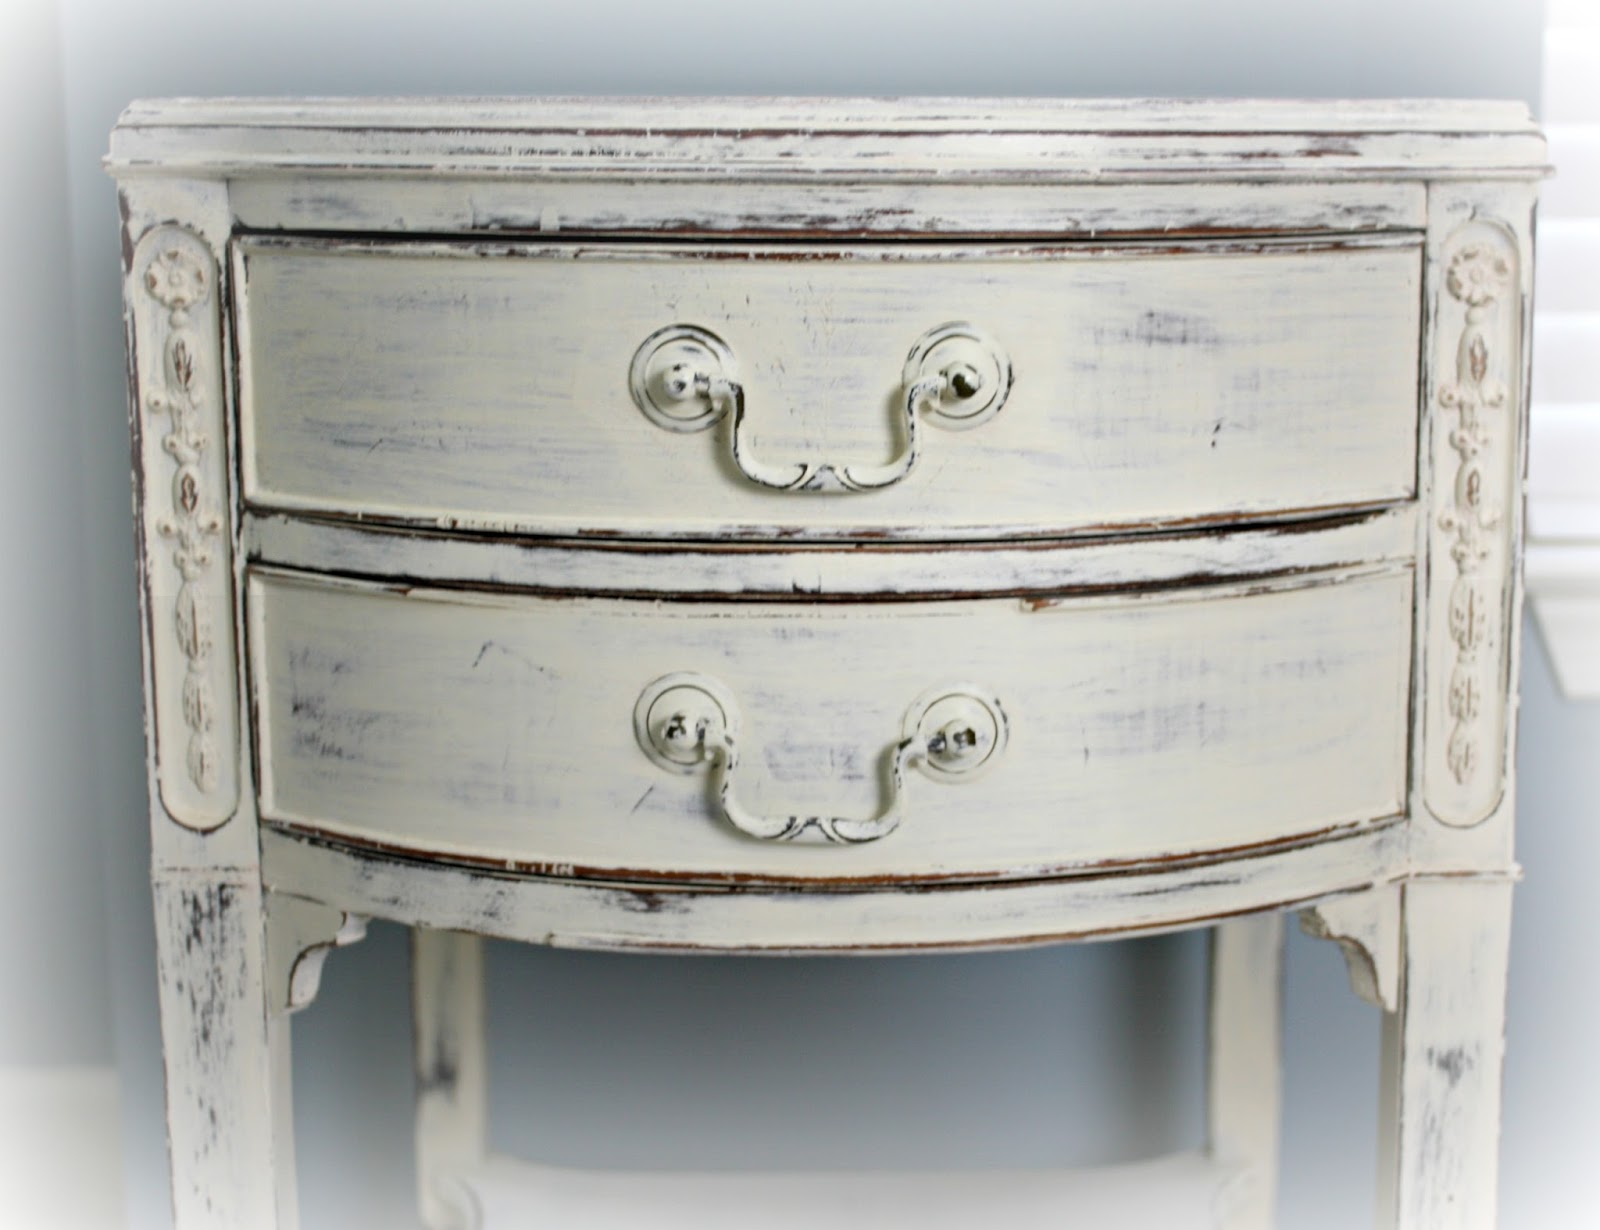 Bowed drawer fronts